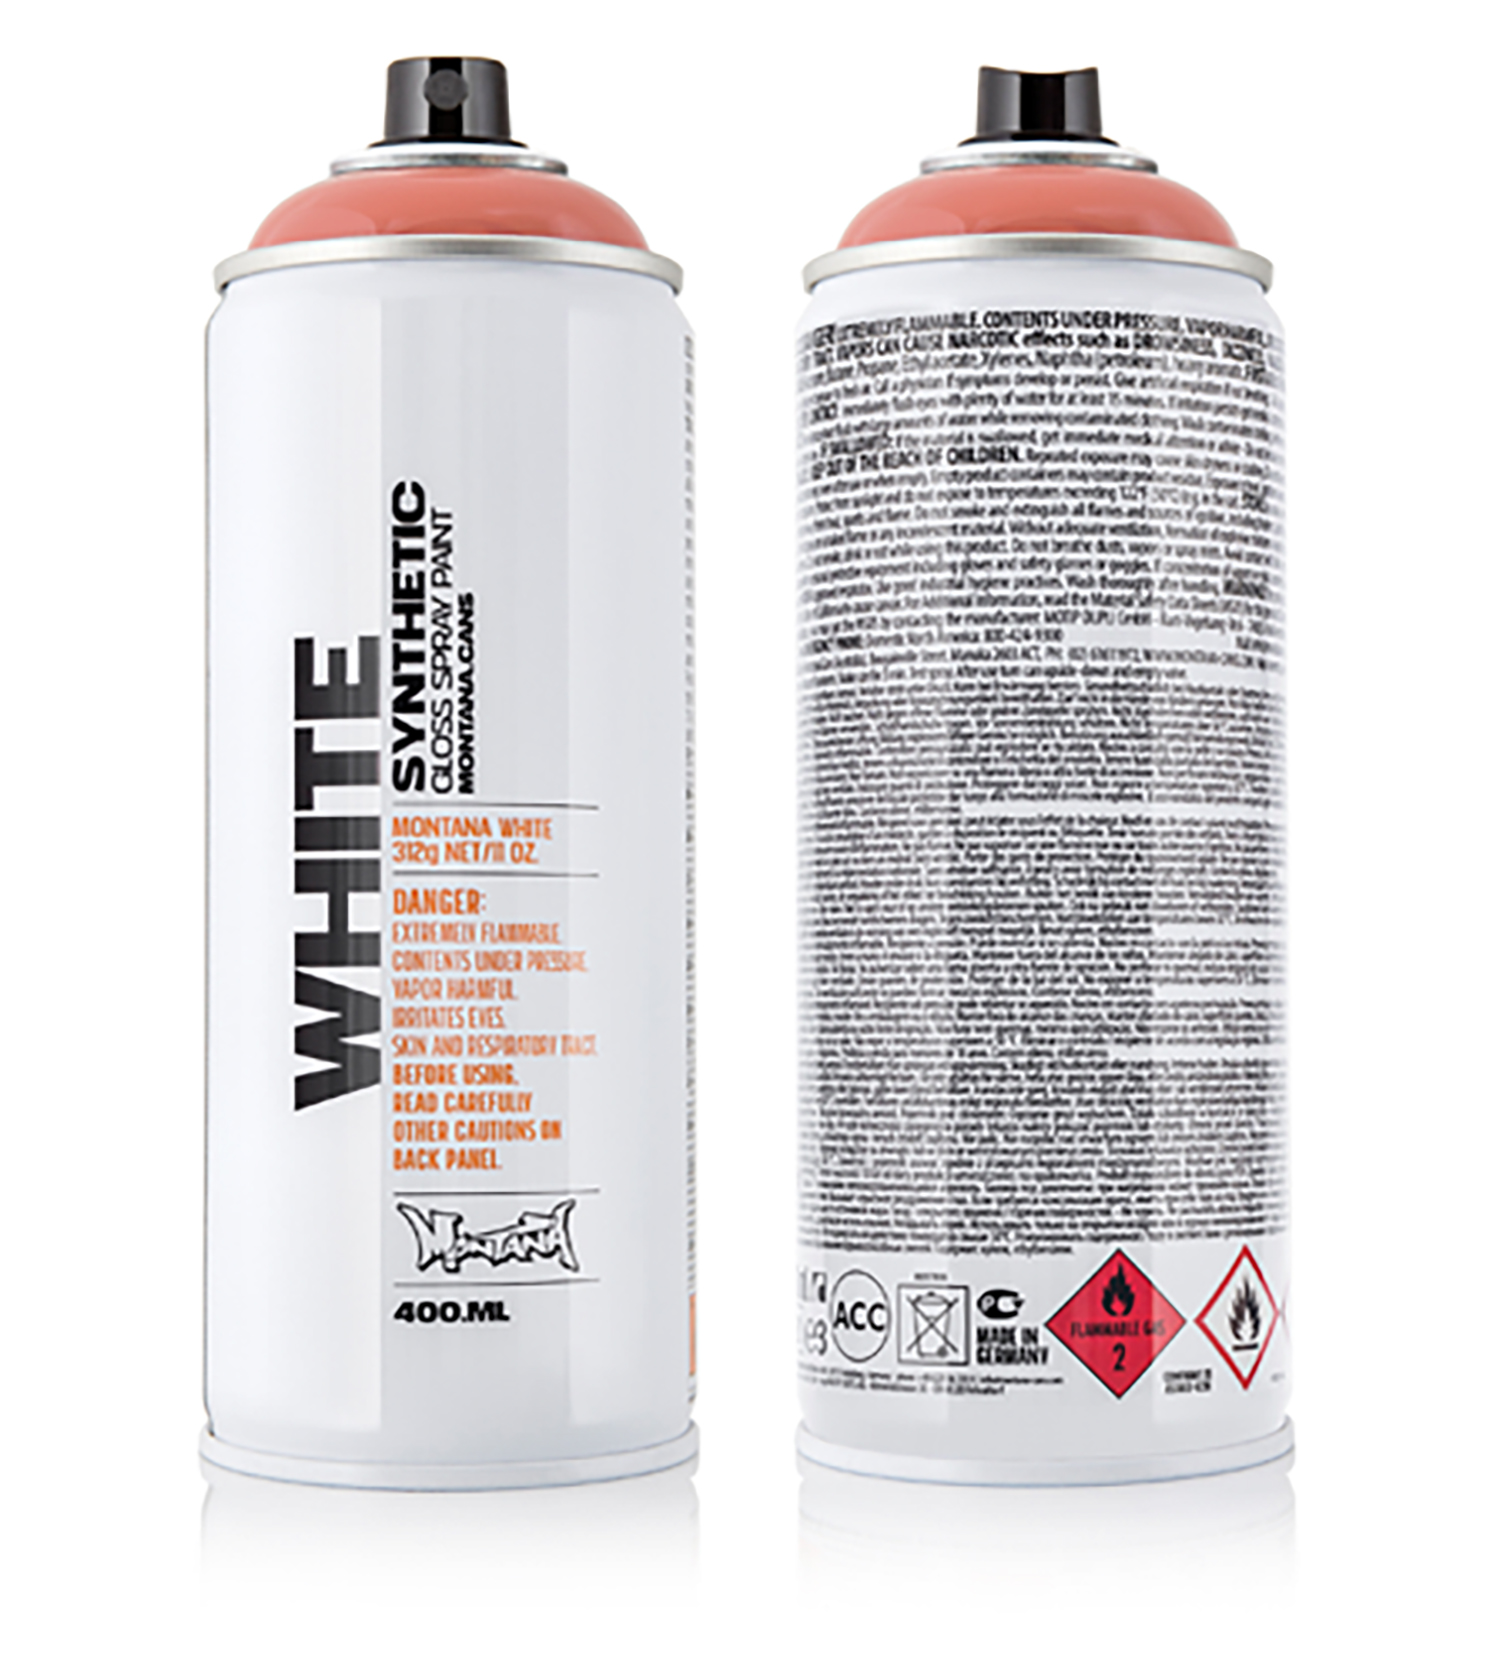 MONTANA-WHITE-SPRAY-400ML-8130